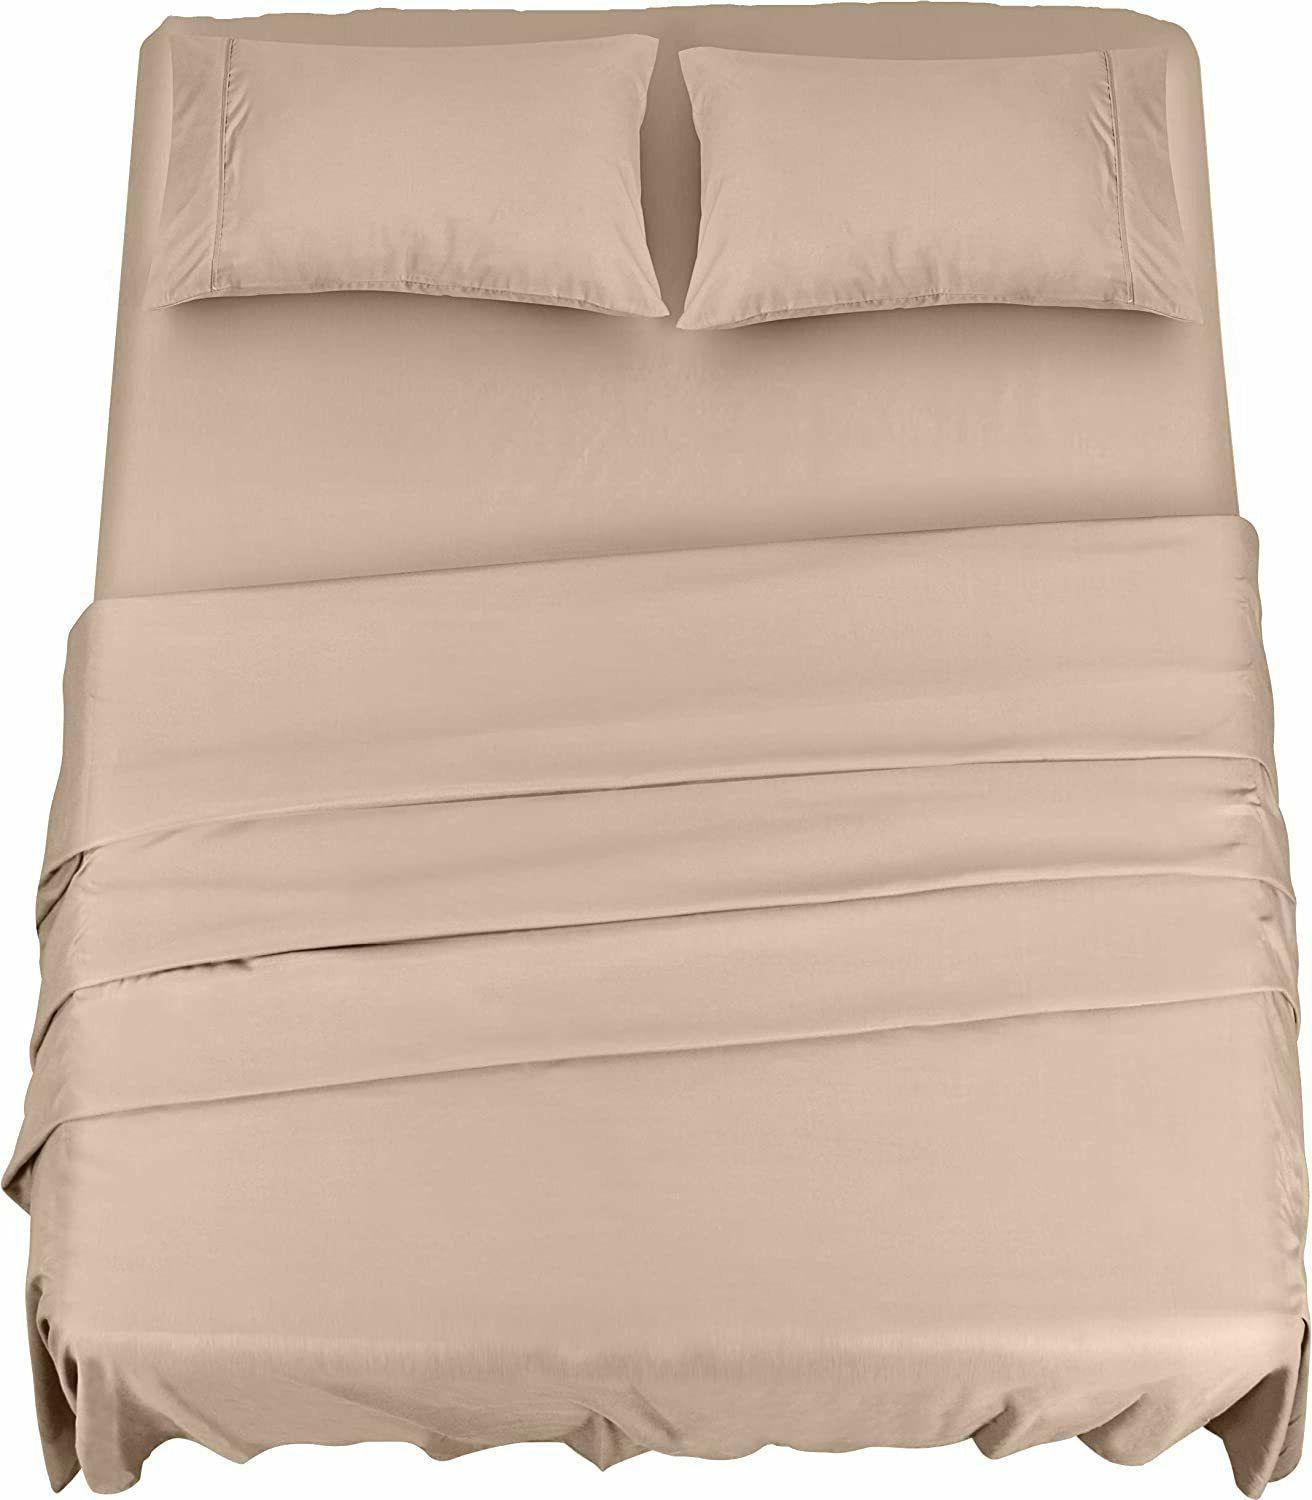 Soft Brushed Microfiber Piece Sheet with Bedding